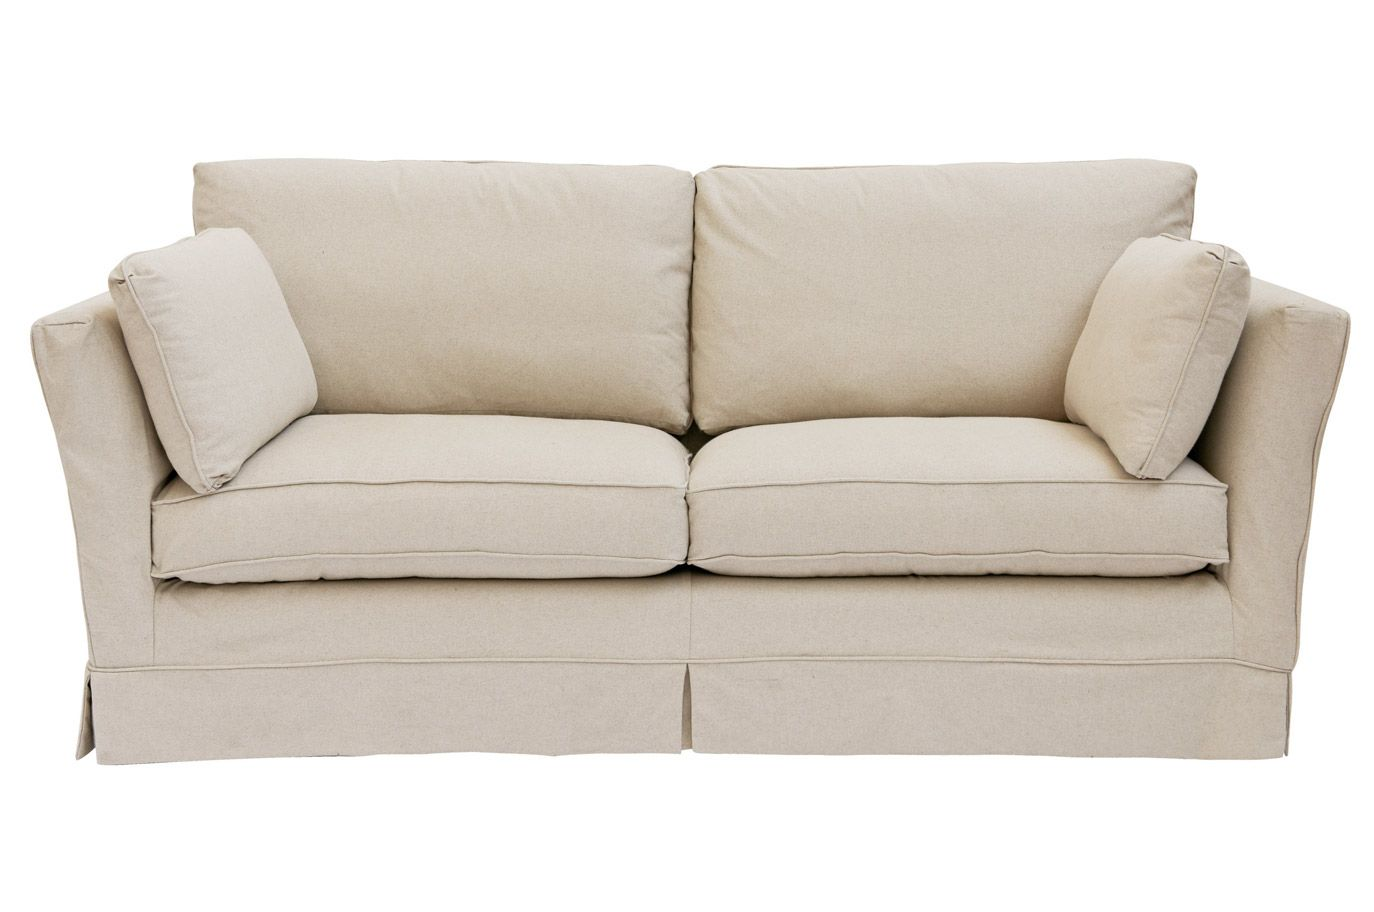 Norfolk Upholstered Large 2 Seater Sofa Laura Ashley Made To Order